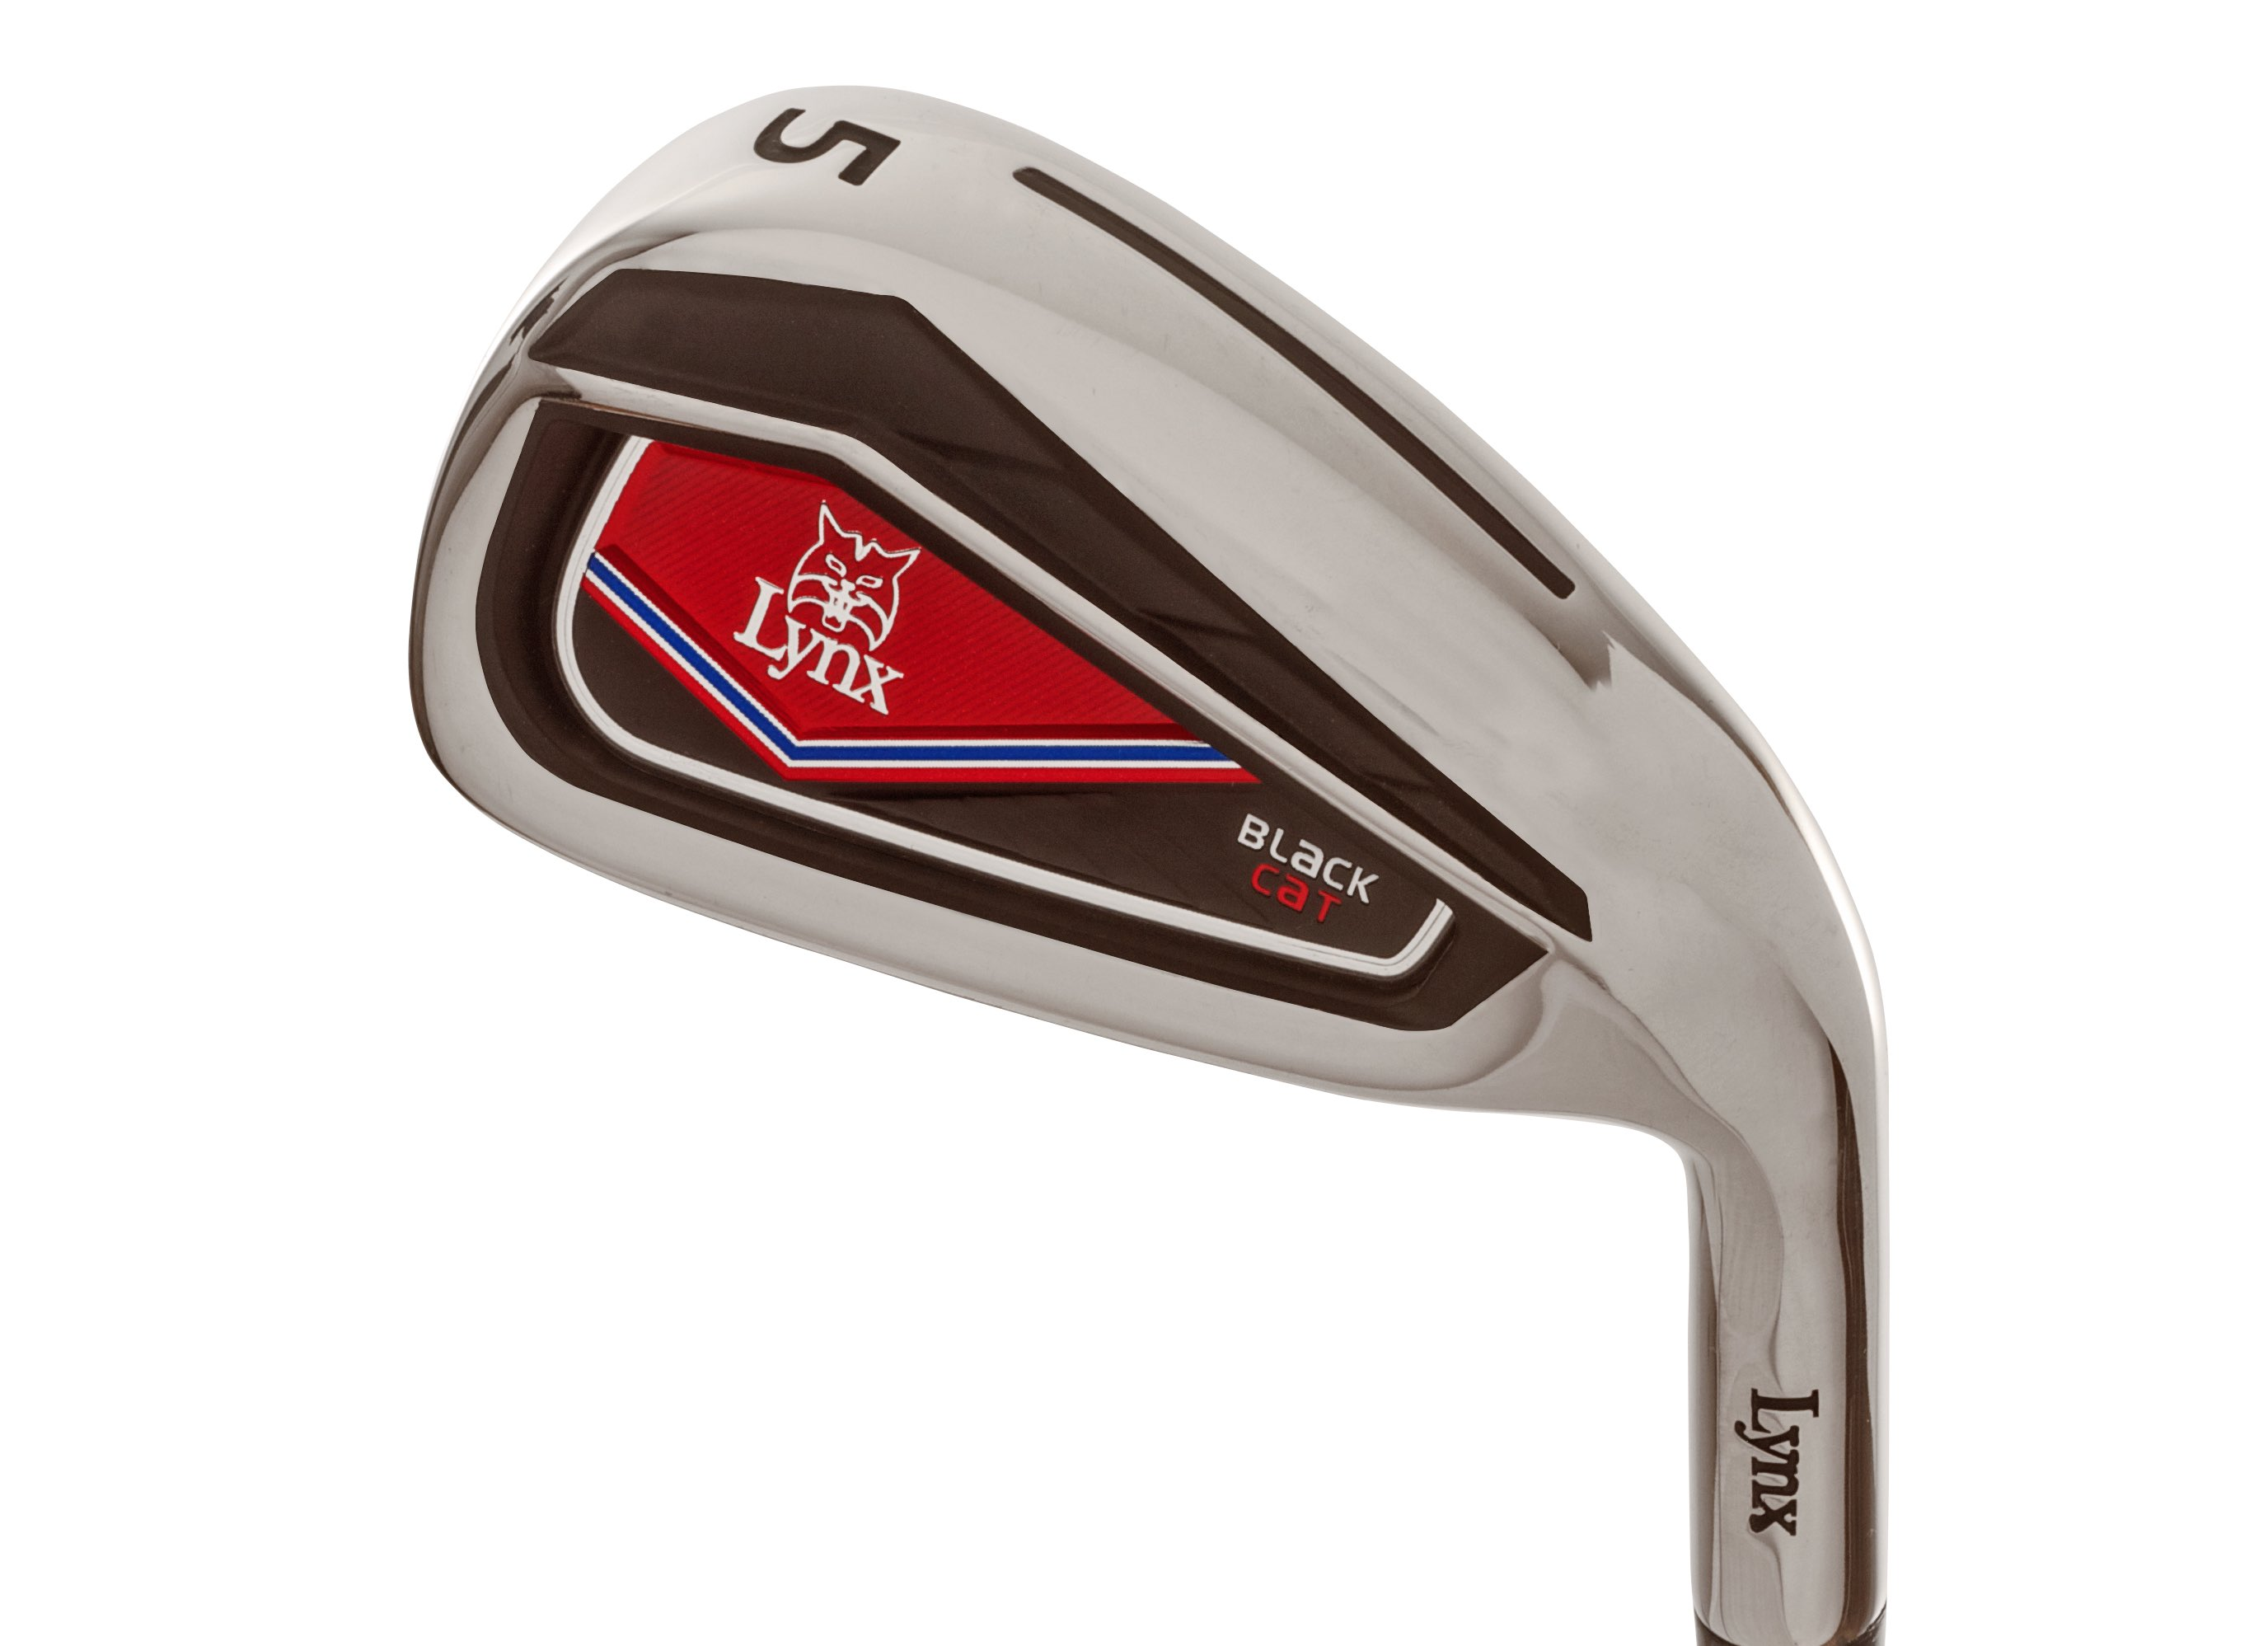 Lynx Black Cat Irons Golfpunkhq